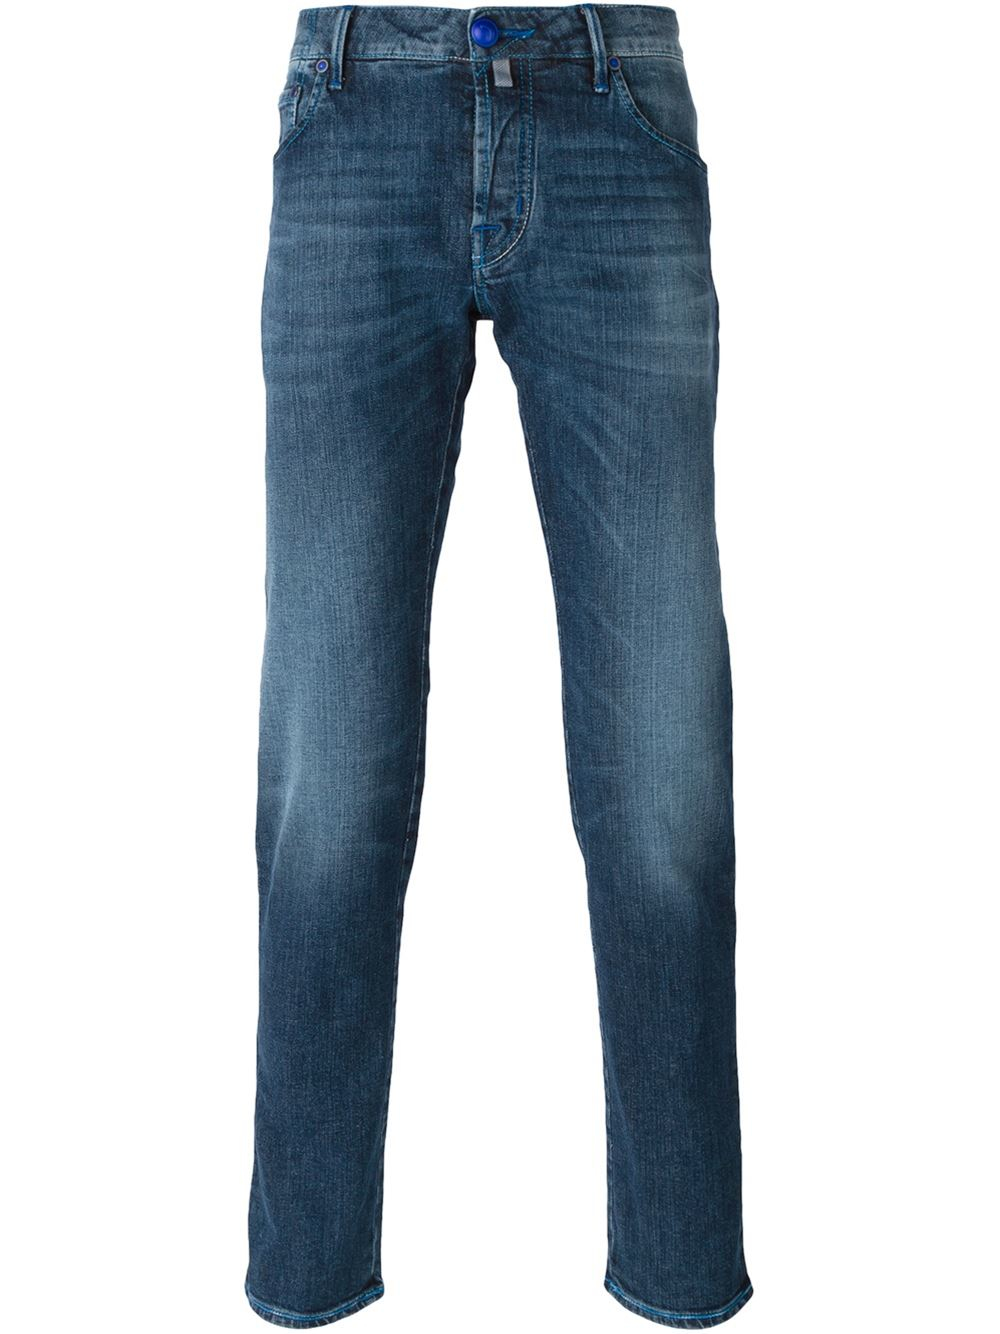 jacob cohen slim fit jeans in blue for men. Black Bedroom Furniture Sets. Home Design Ideas